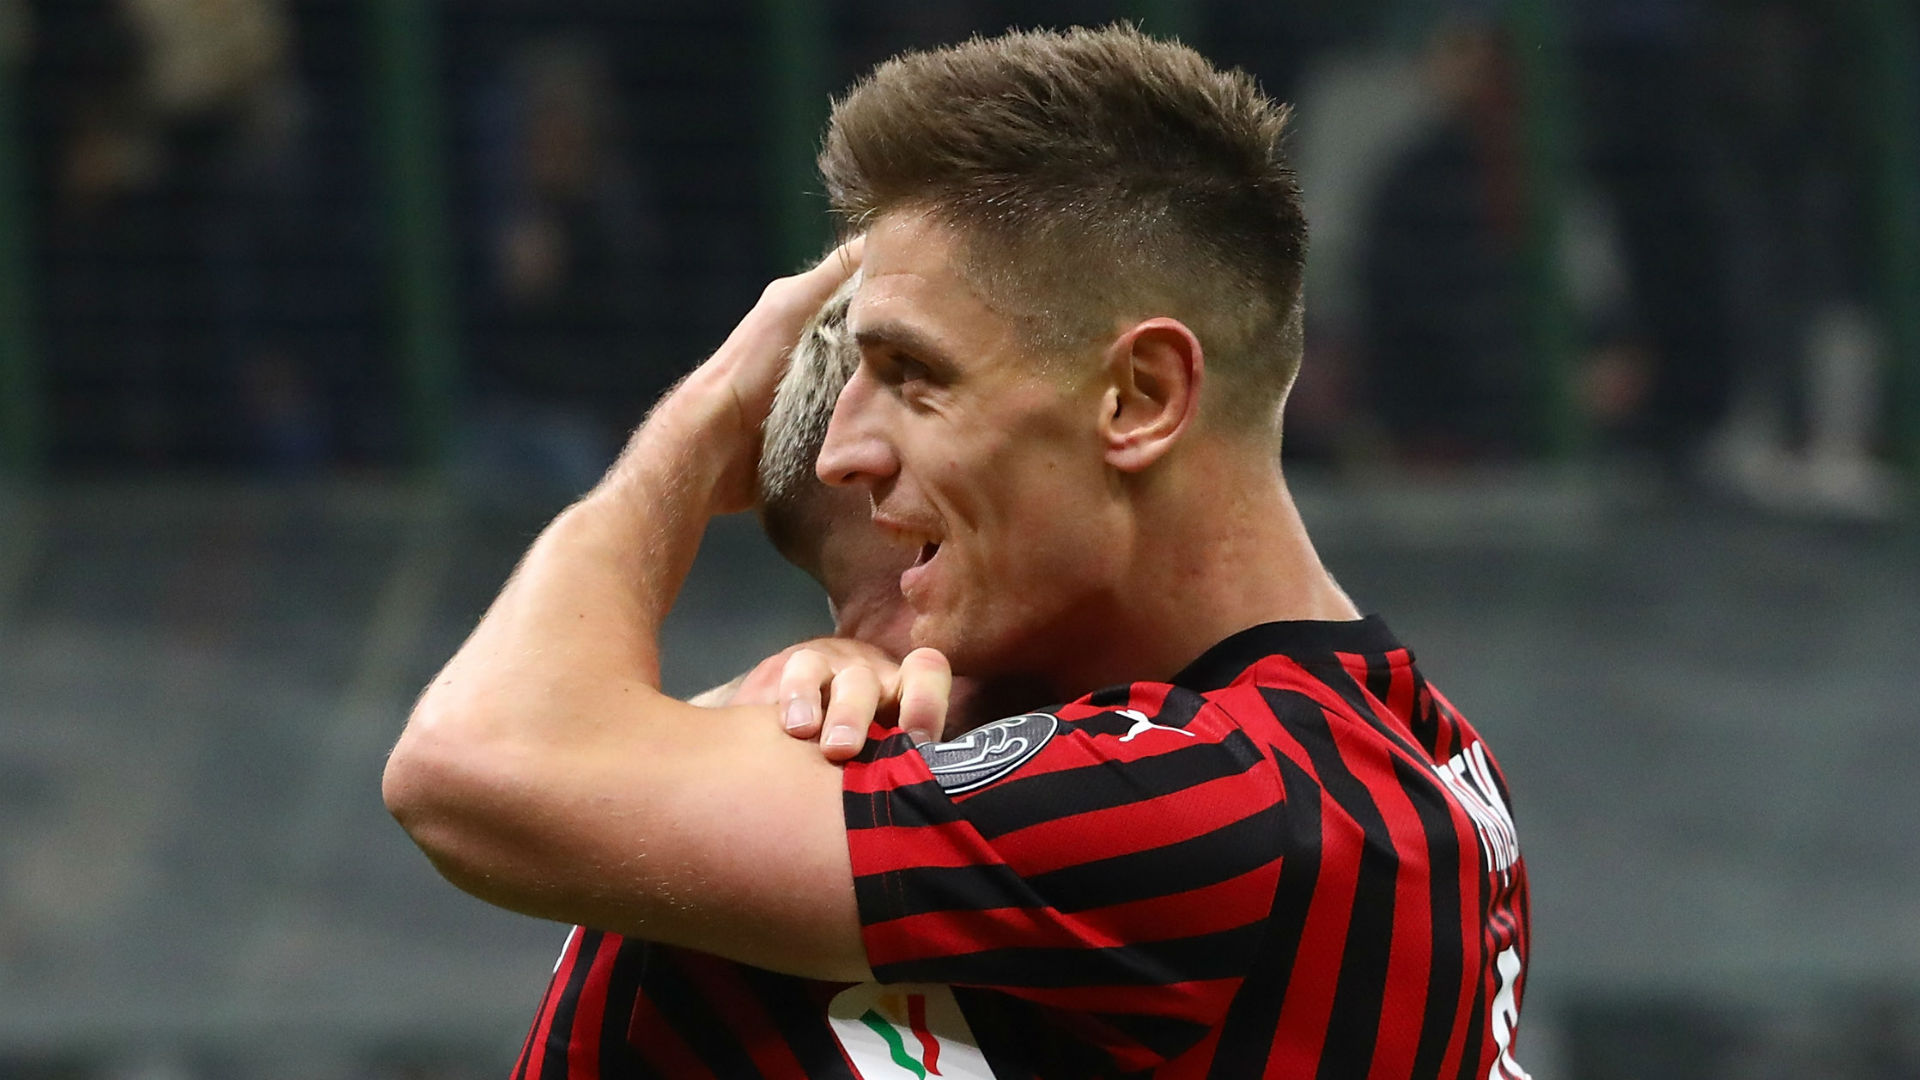 Milan saw off SPAL with little difficulty to reach the Coppa Italia quarter-finals as Krzysztof Piatek impressed in their 3-0 win.